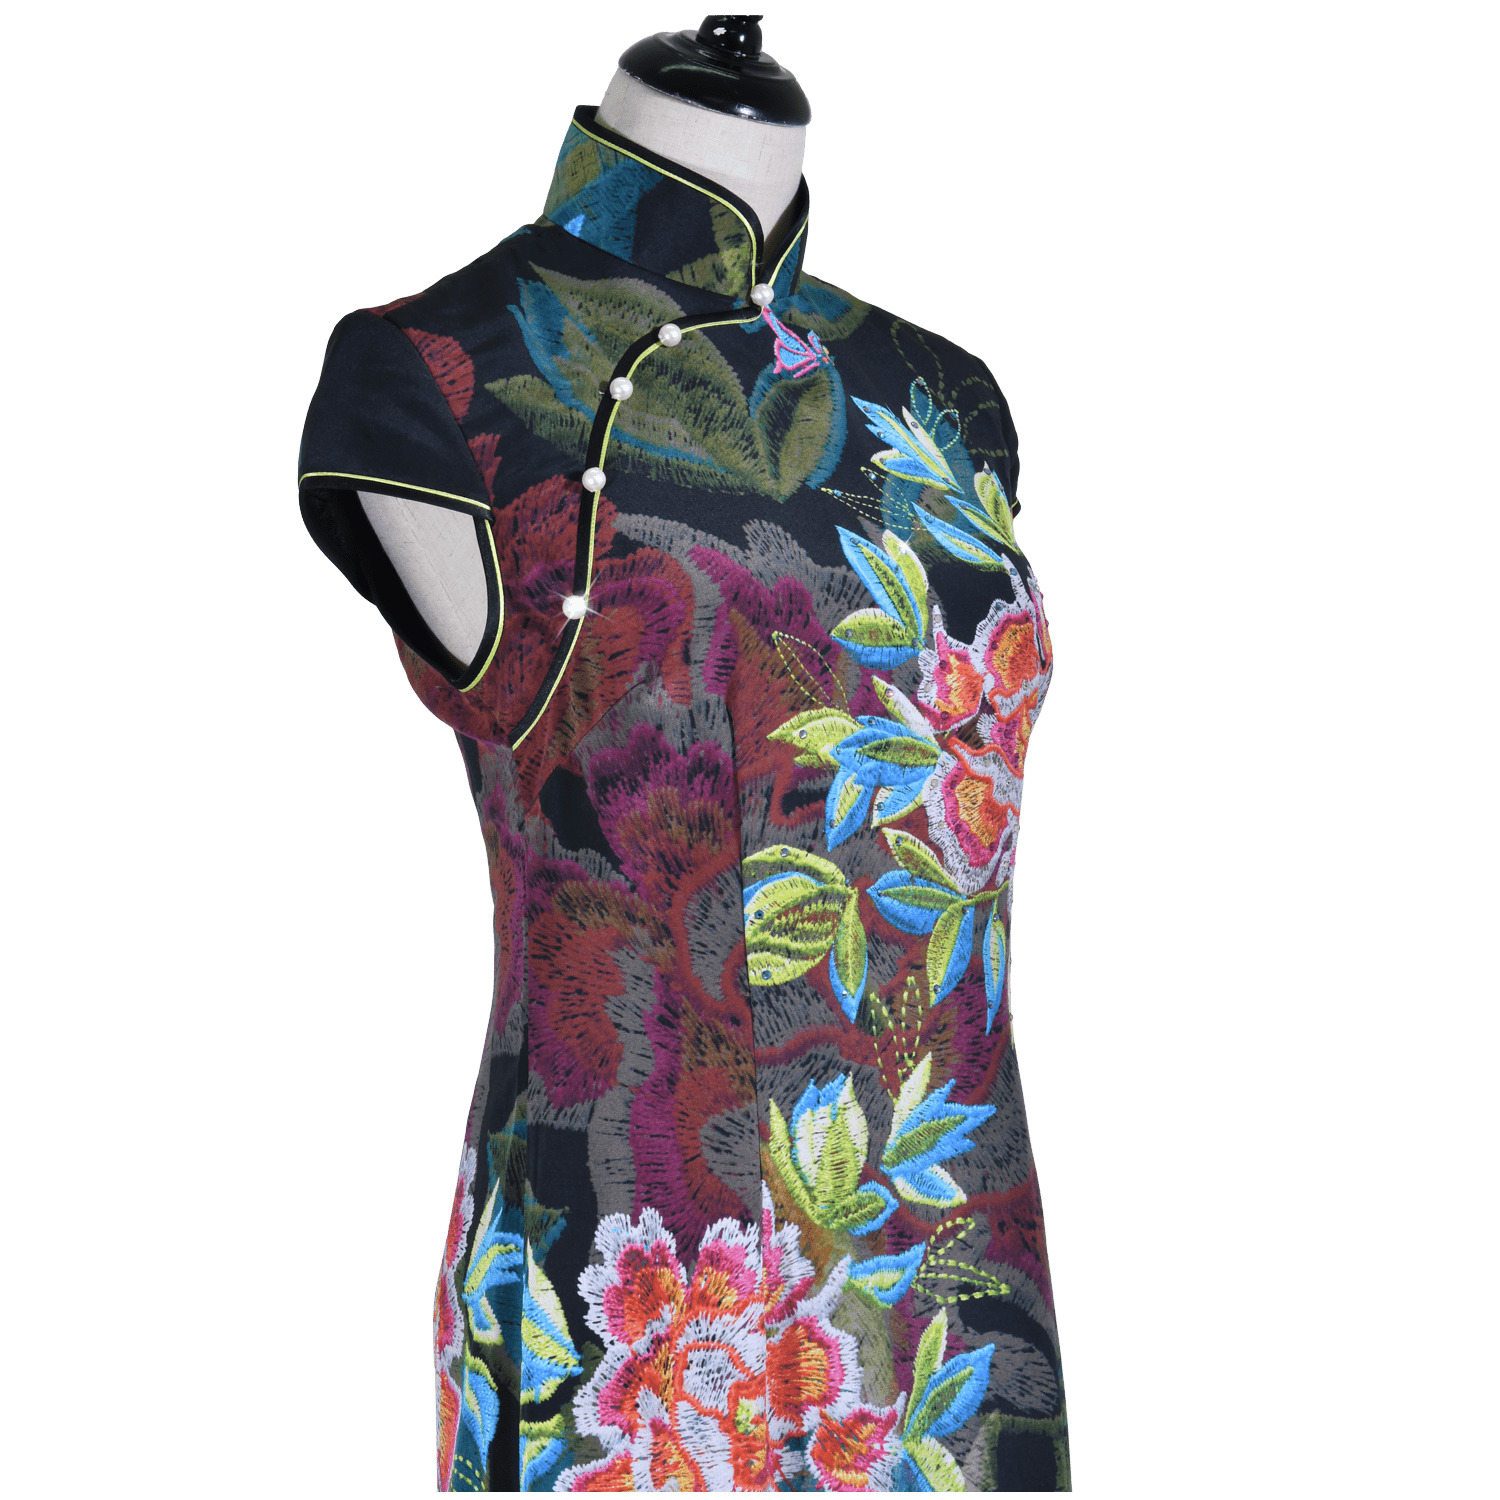 【PEONY】 100% Silk Crystal Cheongsam - THE SPARKLE COLLECTION by GERMAN POOL